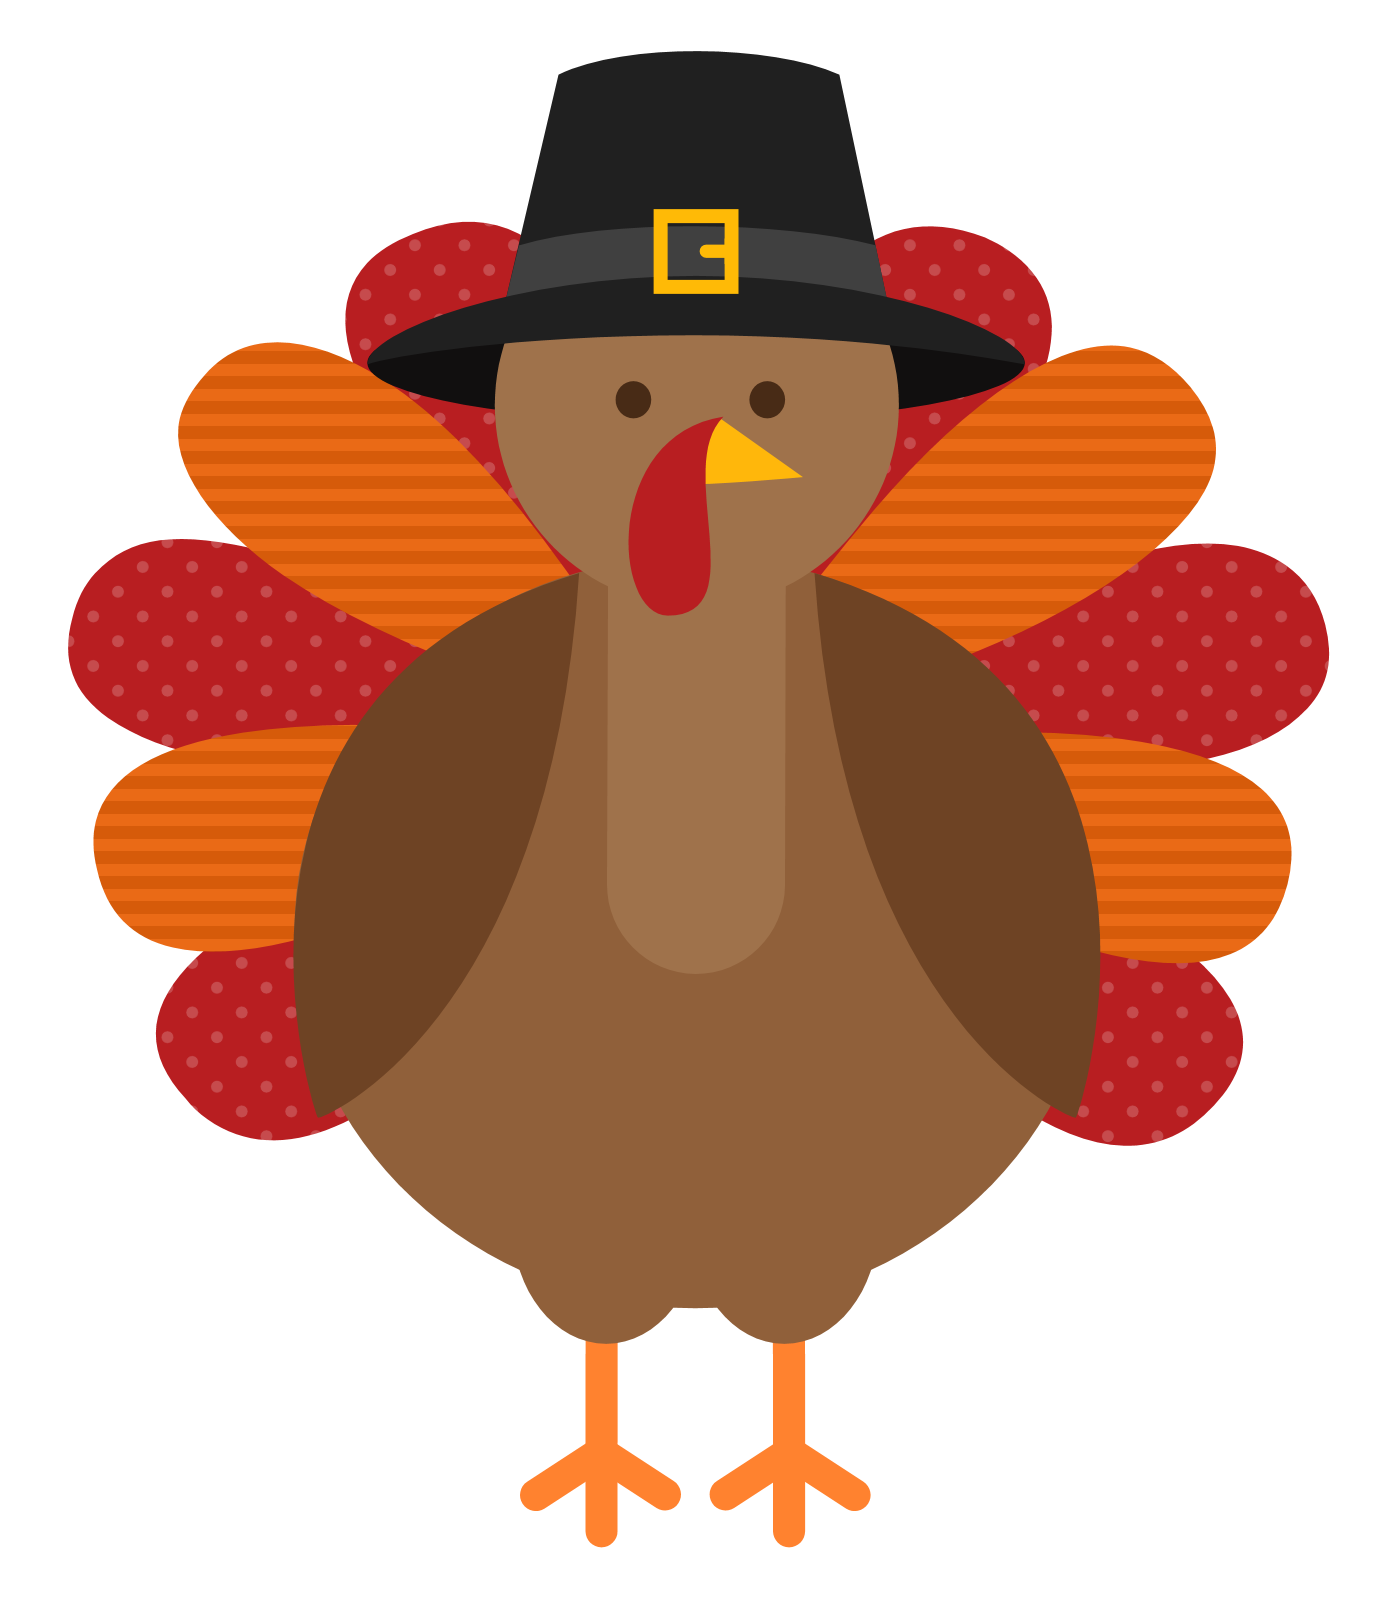 Turkey cute clipart png jpg download Blog Archives - Page 7 of 21 - Laurel Ridge Golf Club, NC jpg download